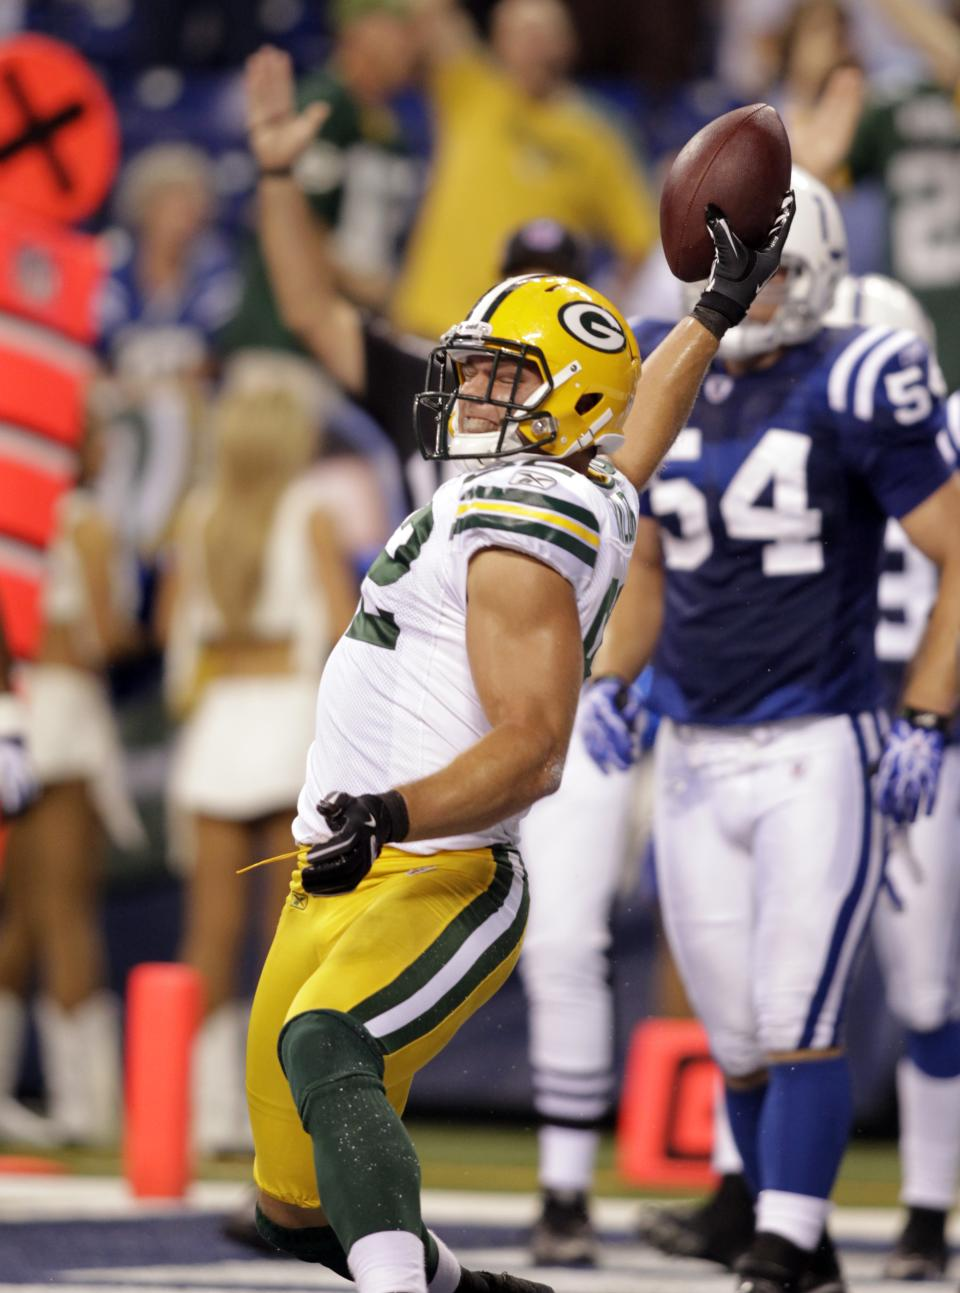 Green Bay Packers tight end Ryan Taylor celebrates a touchdown late in the fourth quarter of an NFL preseason football game against the Indianapolis Colts in Indianapolis, Friday, Aug. 26, 2011. The Pacers defeated the Colts 24-21.(AP Photo/AJ Mast)